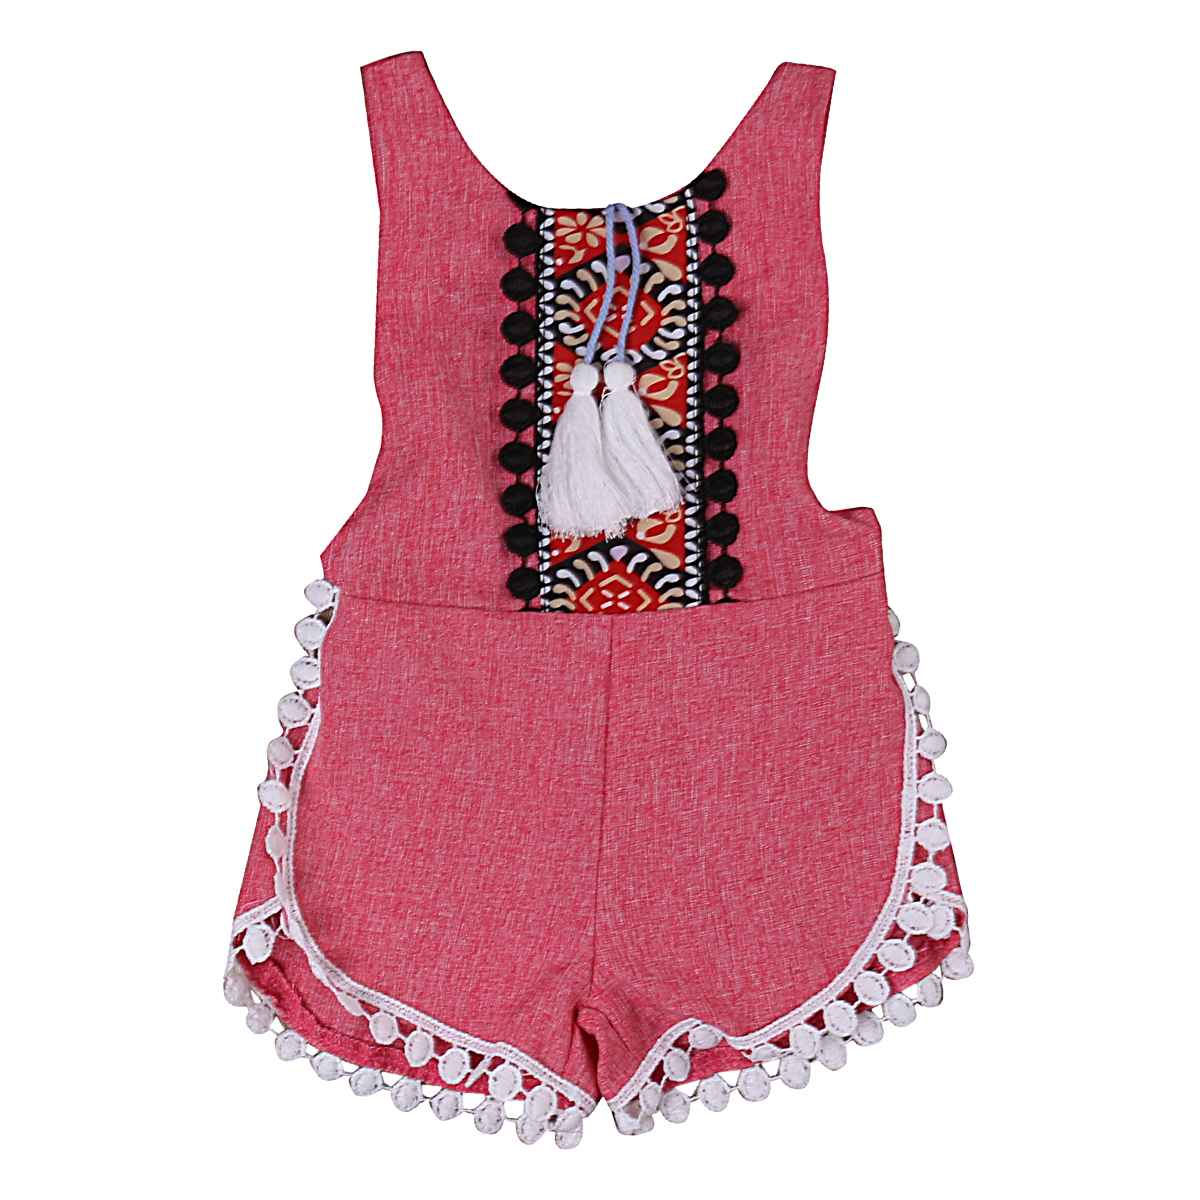 11b2fcc60055 Cotton Newborn Baby Girls Rompers Tassels Infant Little Girl Jumpsuit Boho  Retro Summer Baby Clothing Kids clothes 0-18 M